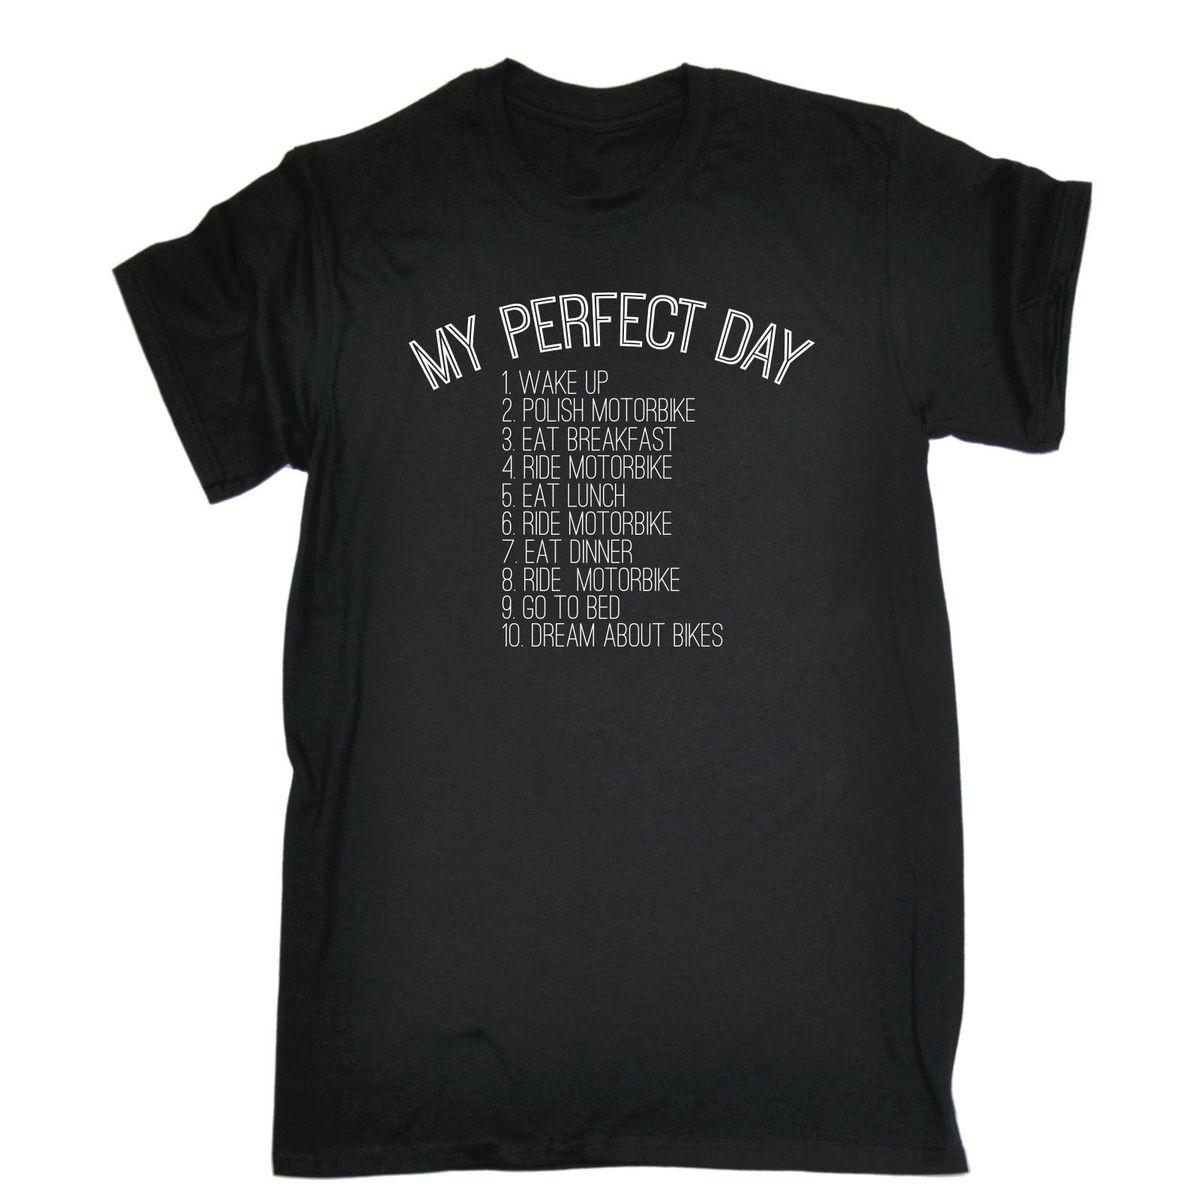 61a053b1 MY PERFECT DAY BIKES T SHIRT Tee Motorbike Rider Cyclist Funny Birthday  Gift Ot Shirts Best Designer T Shirts From Amesion, $11.45| DHgate.Com